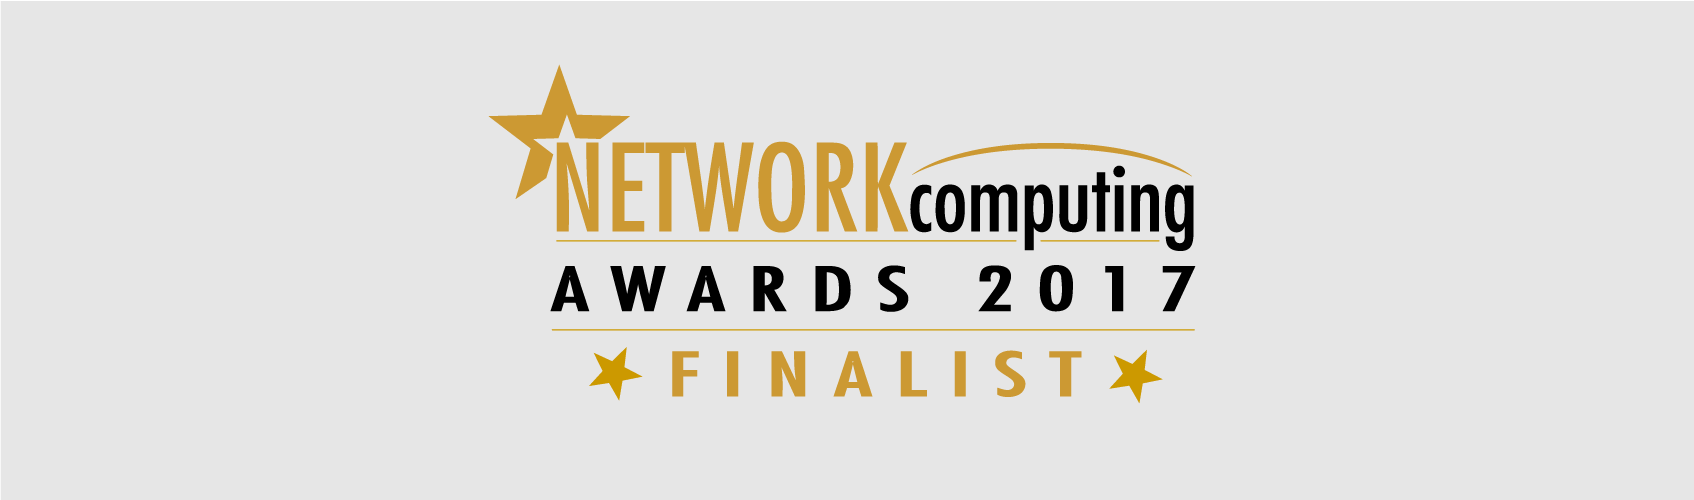 Network Computing Awards - Network Project of the Year Finalist 2017